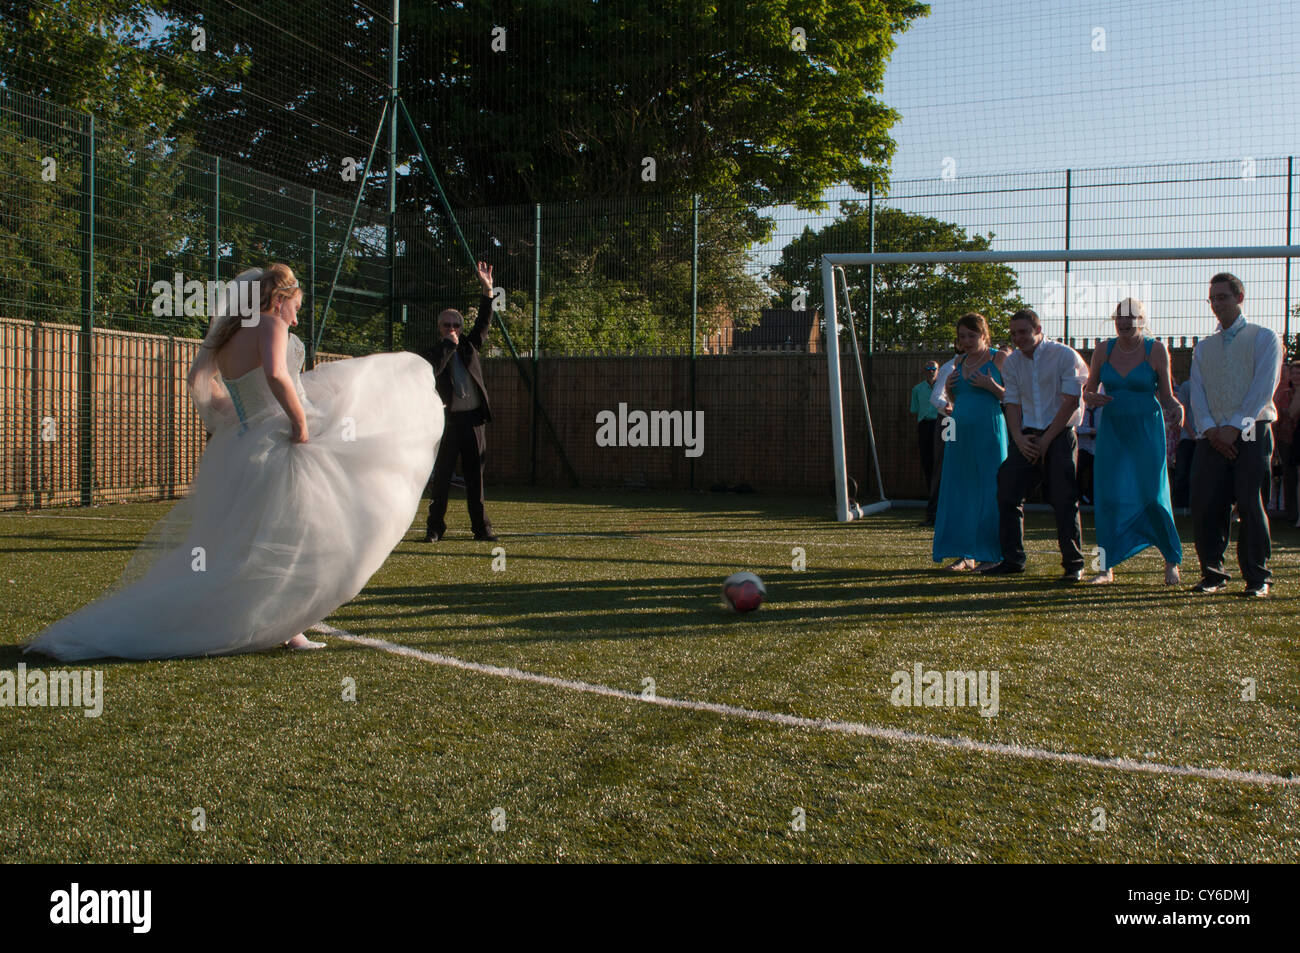 Model Released - quirky shot of a bride playing football at a wedding - Stock Image